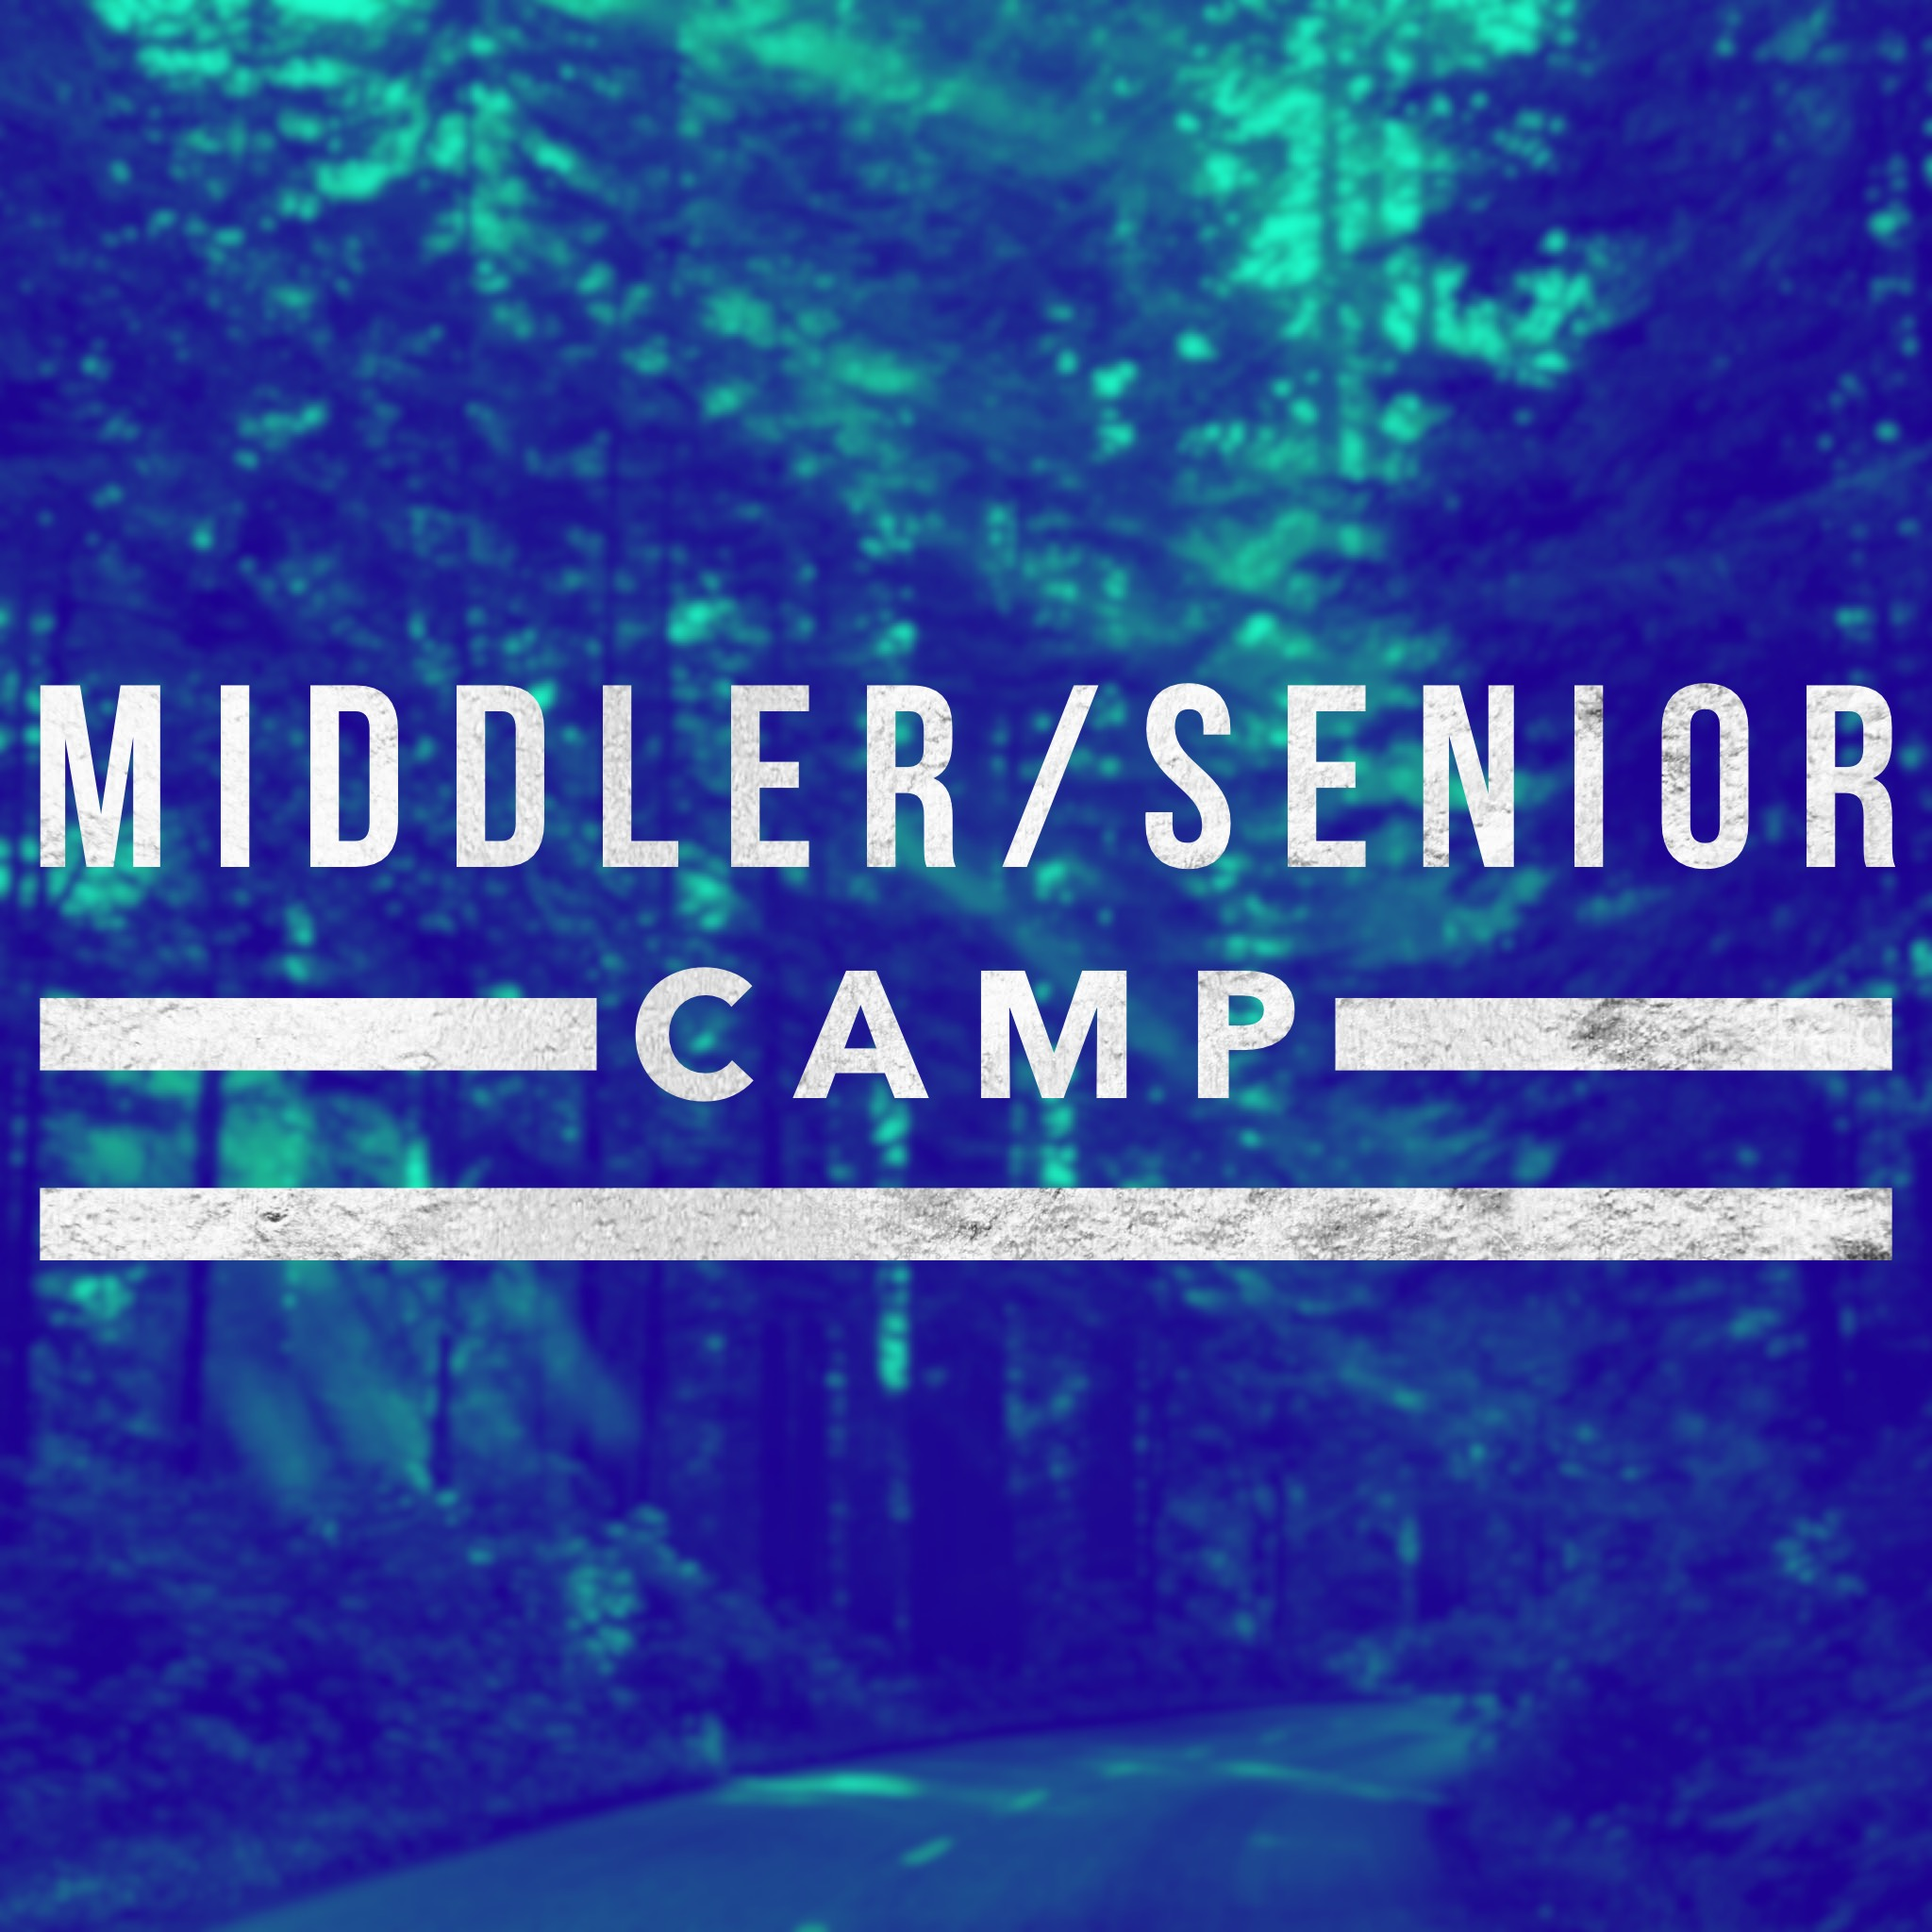 middler senior camp